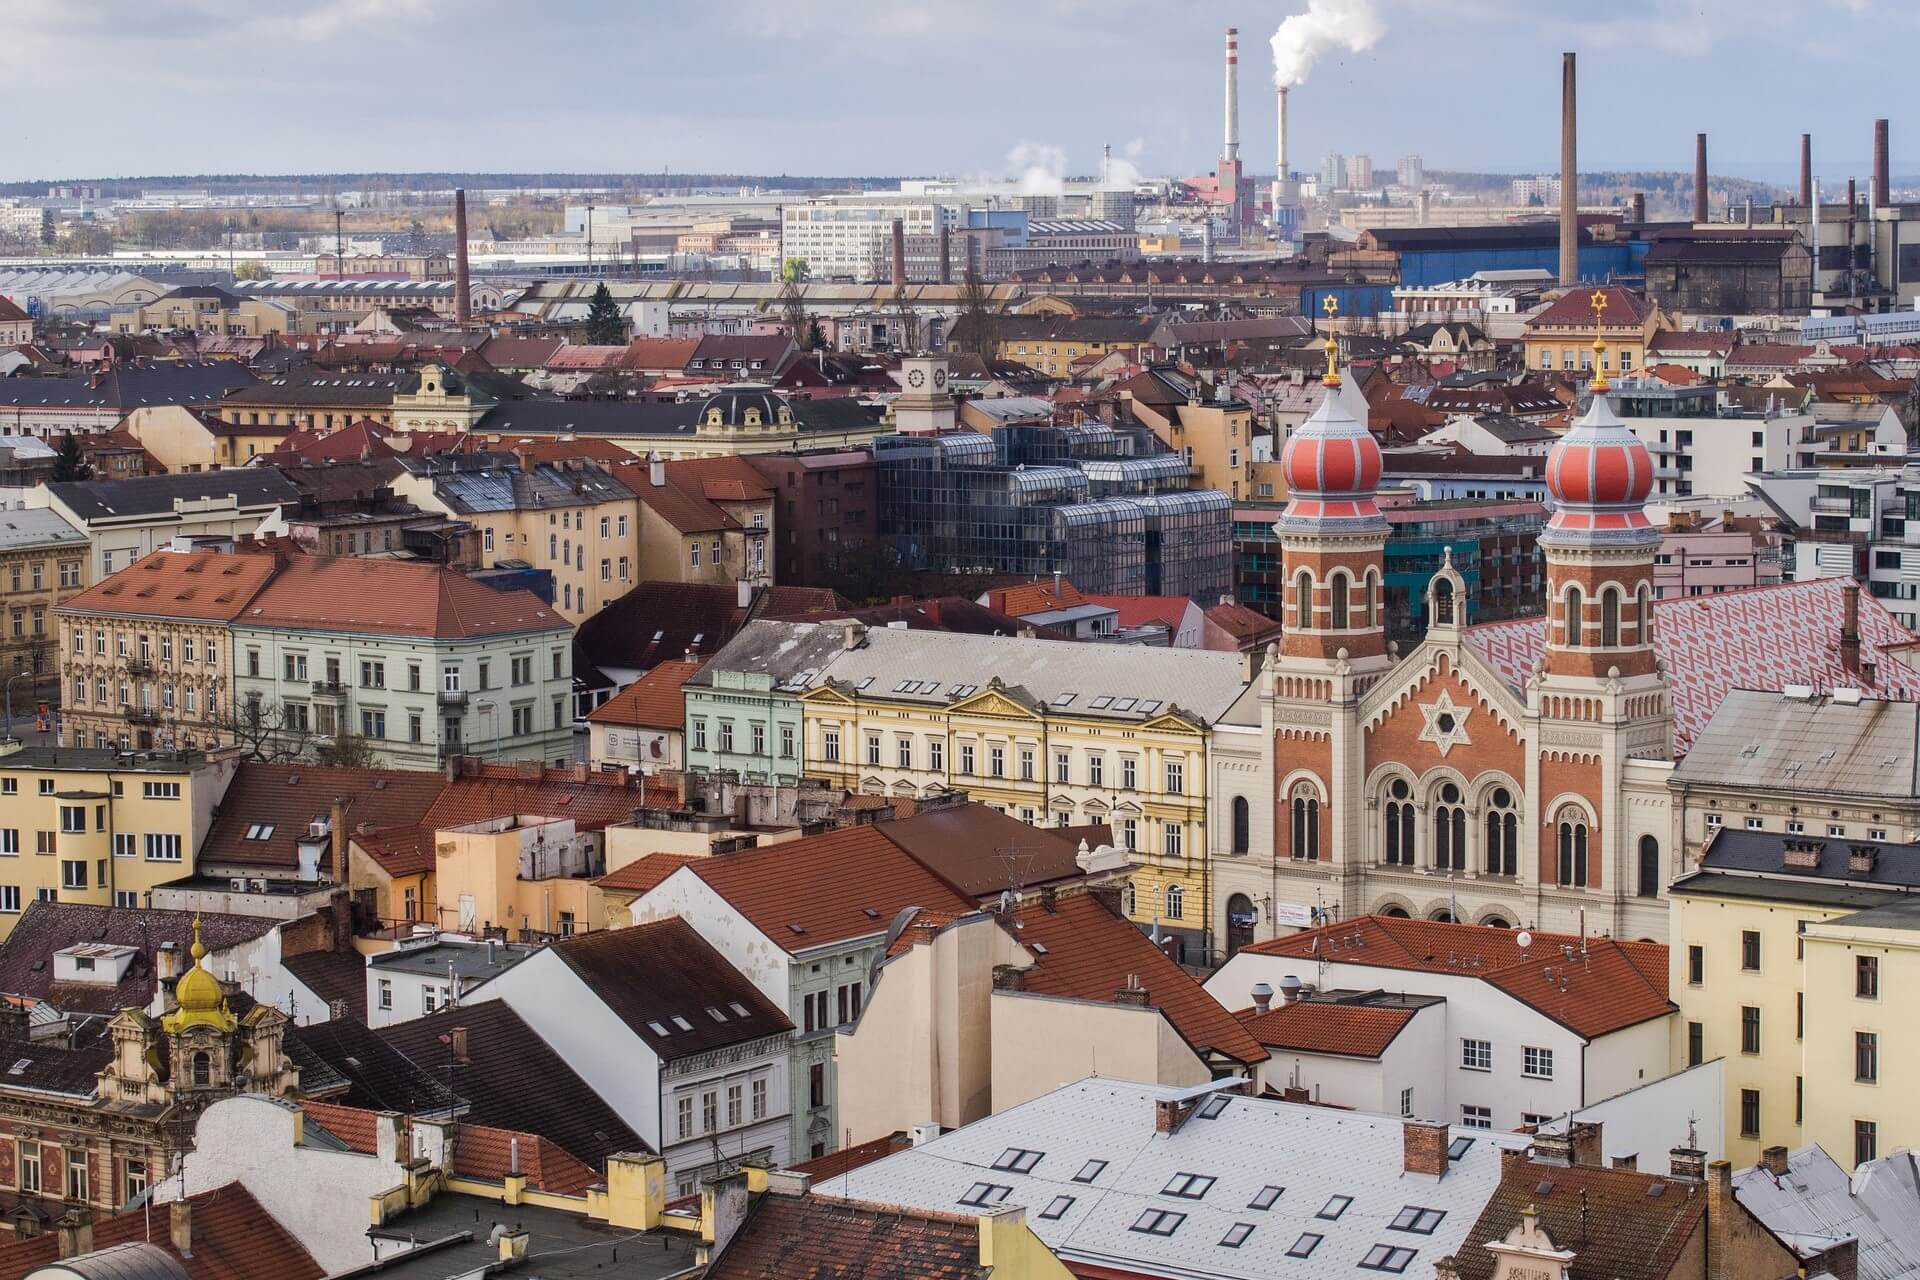 Pilsen is found just west of Prague, about an hour from the capital and is the birthplace of Czech beer.